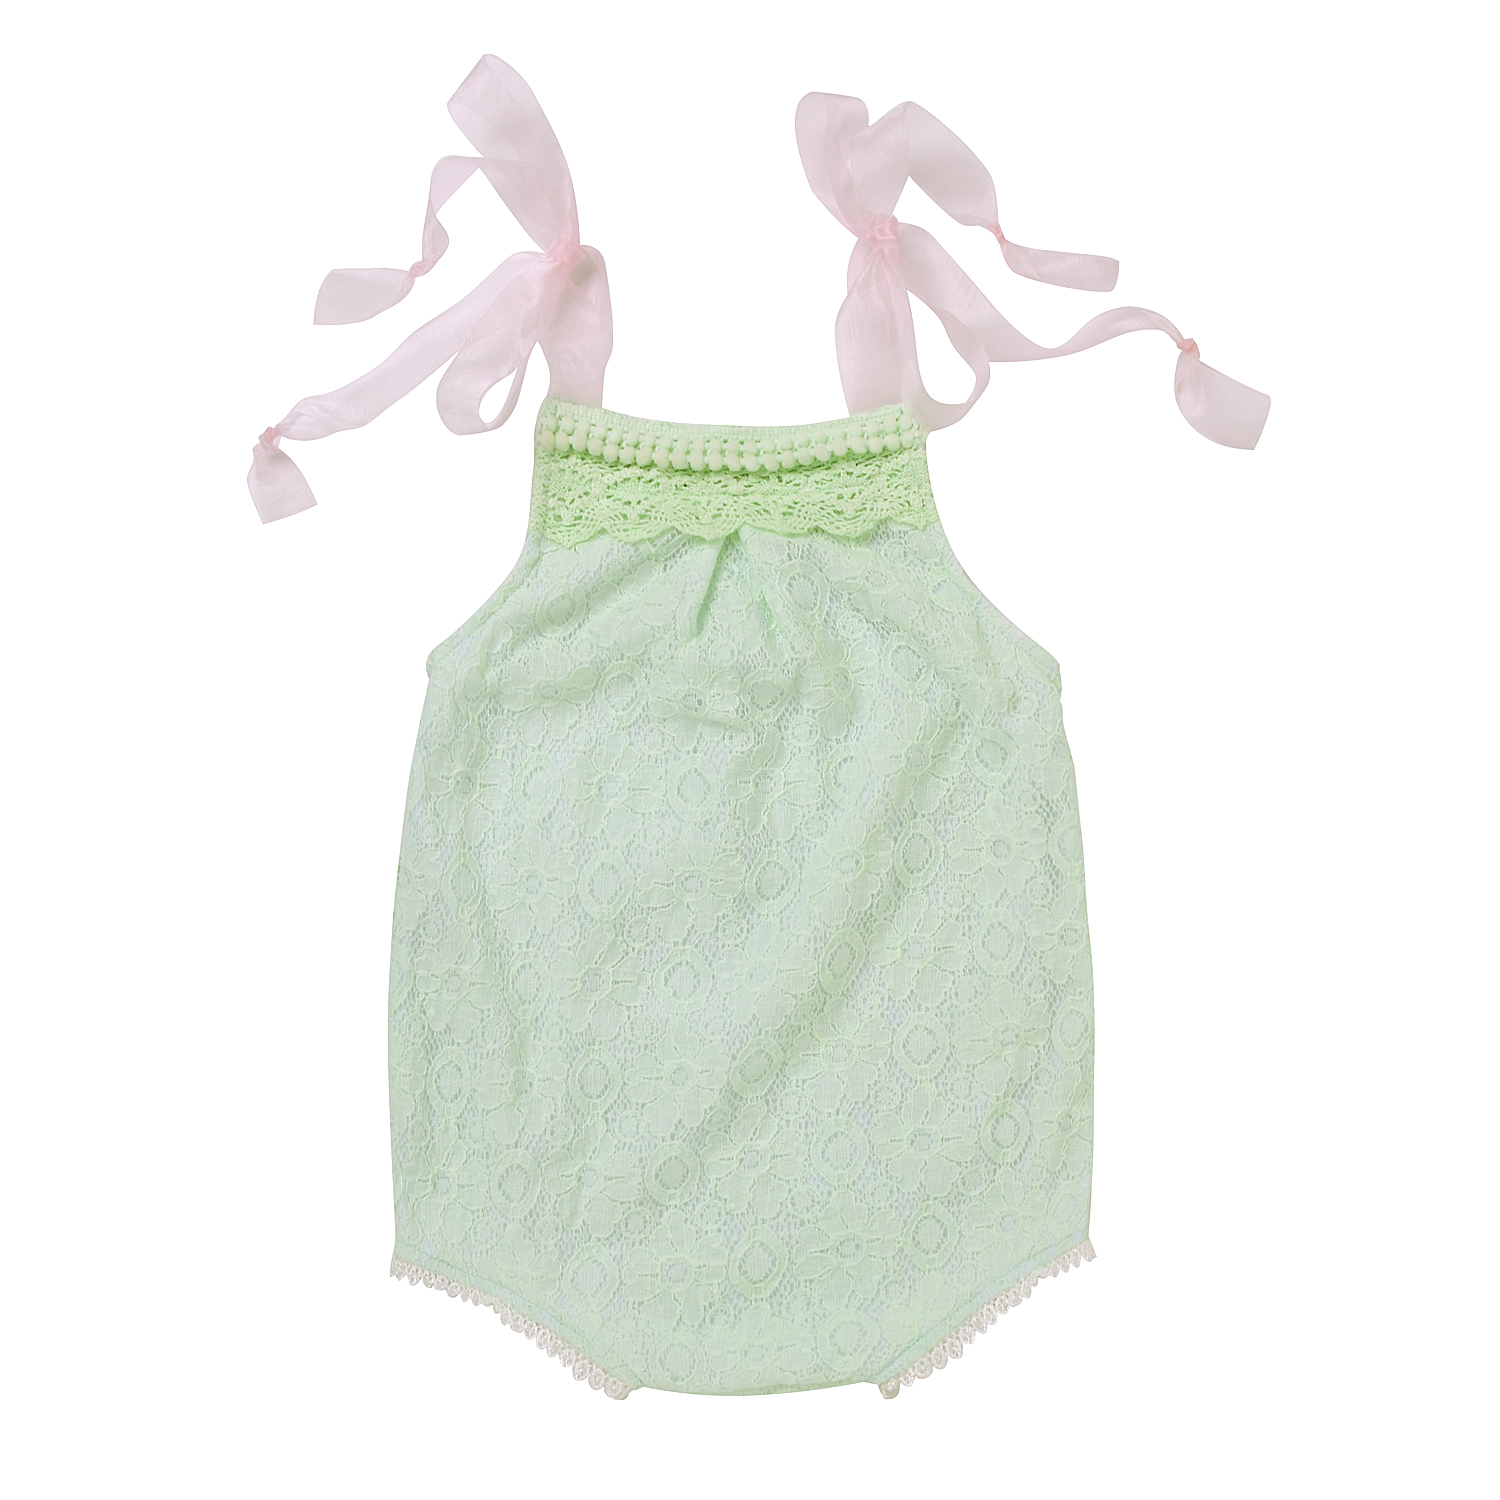 Cute Newborn Infant Baby Girls Romper Lace Floral Strap Romper Jumpsuit Outfits Summer Baby Clothes Baby Onesie Toddler Jumpsuit newborn infant baby girl clothes strap lace floral romper jumpsuit outfit summer cotton backless one pieces outfit baby onesie